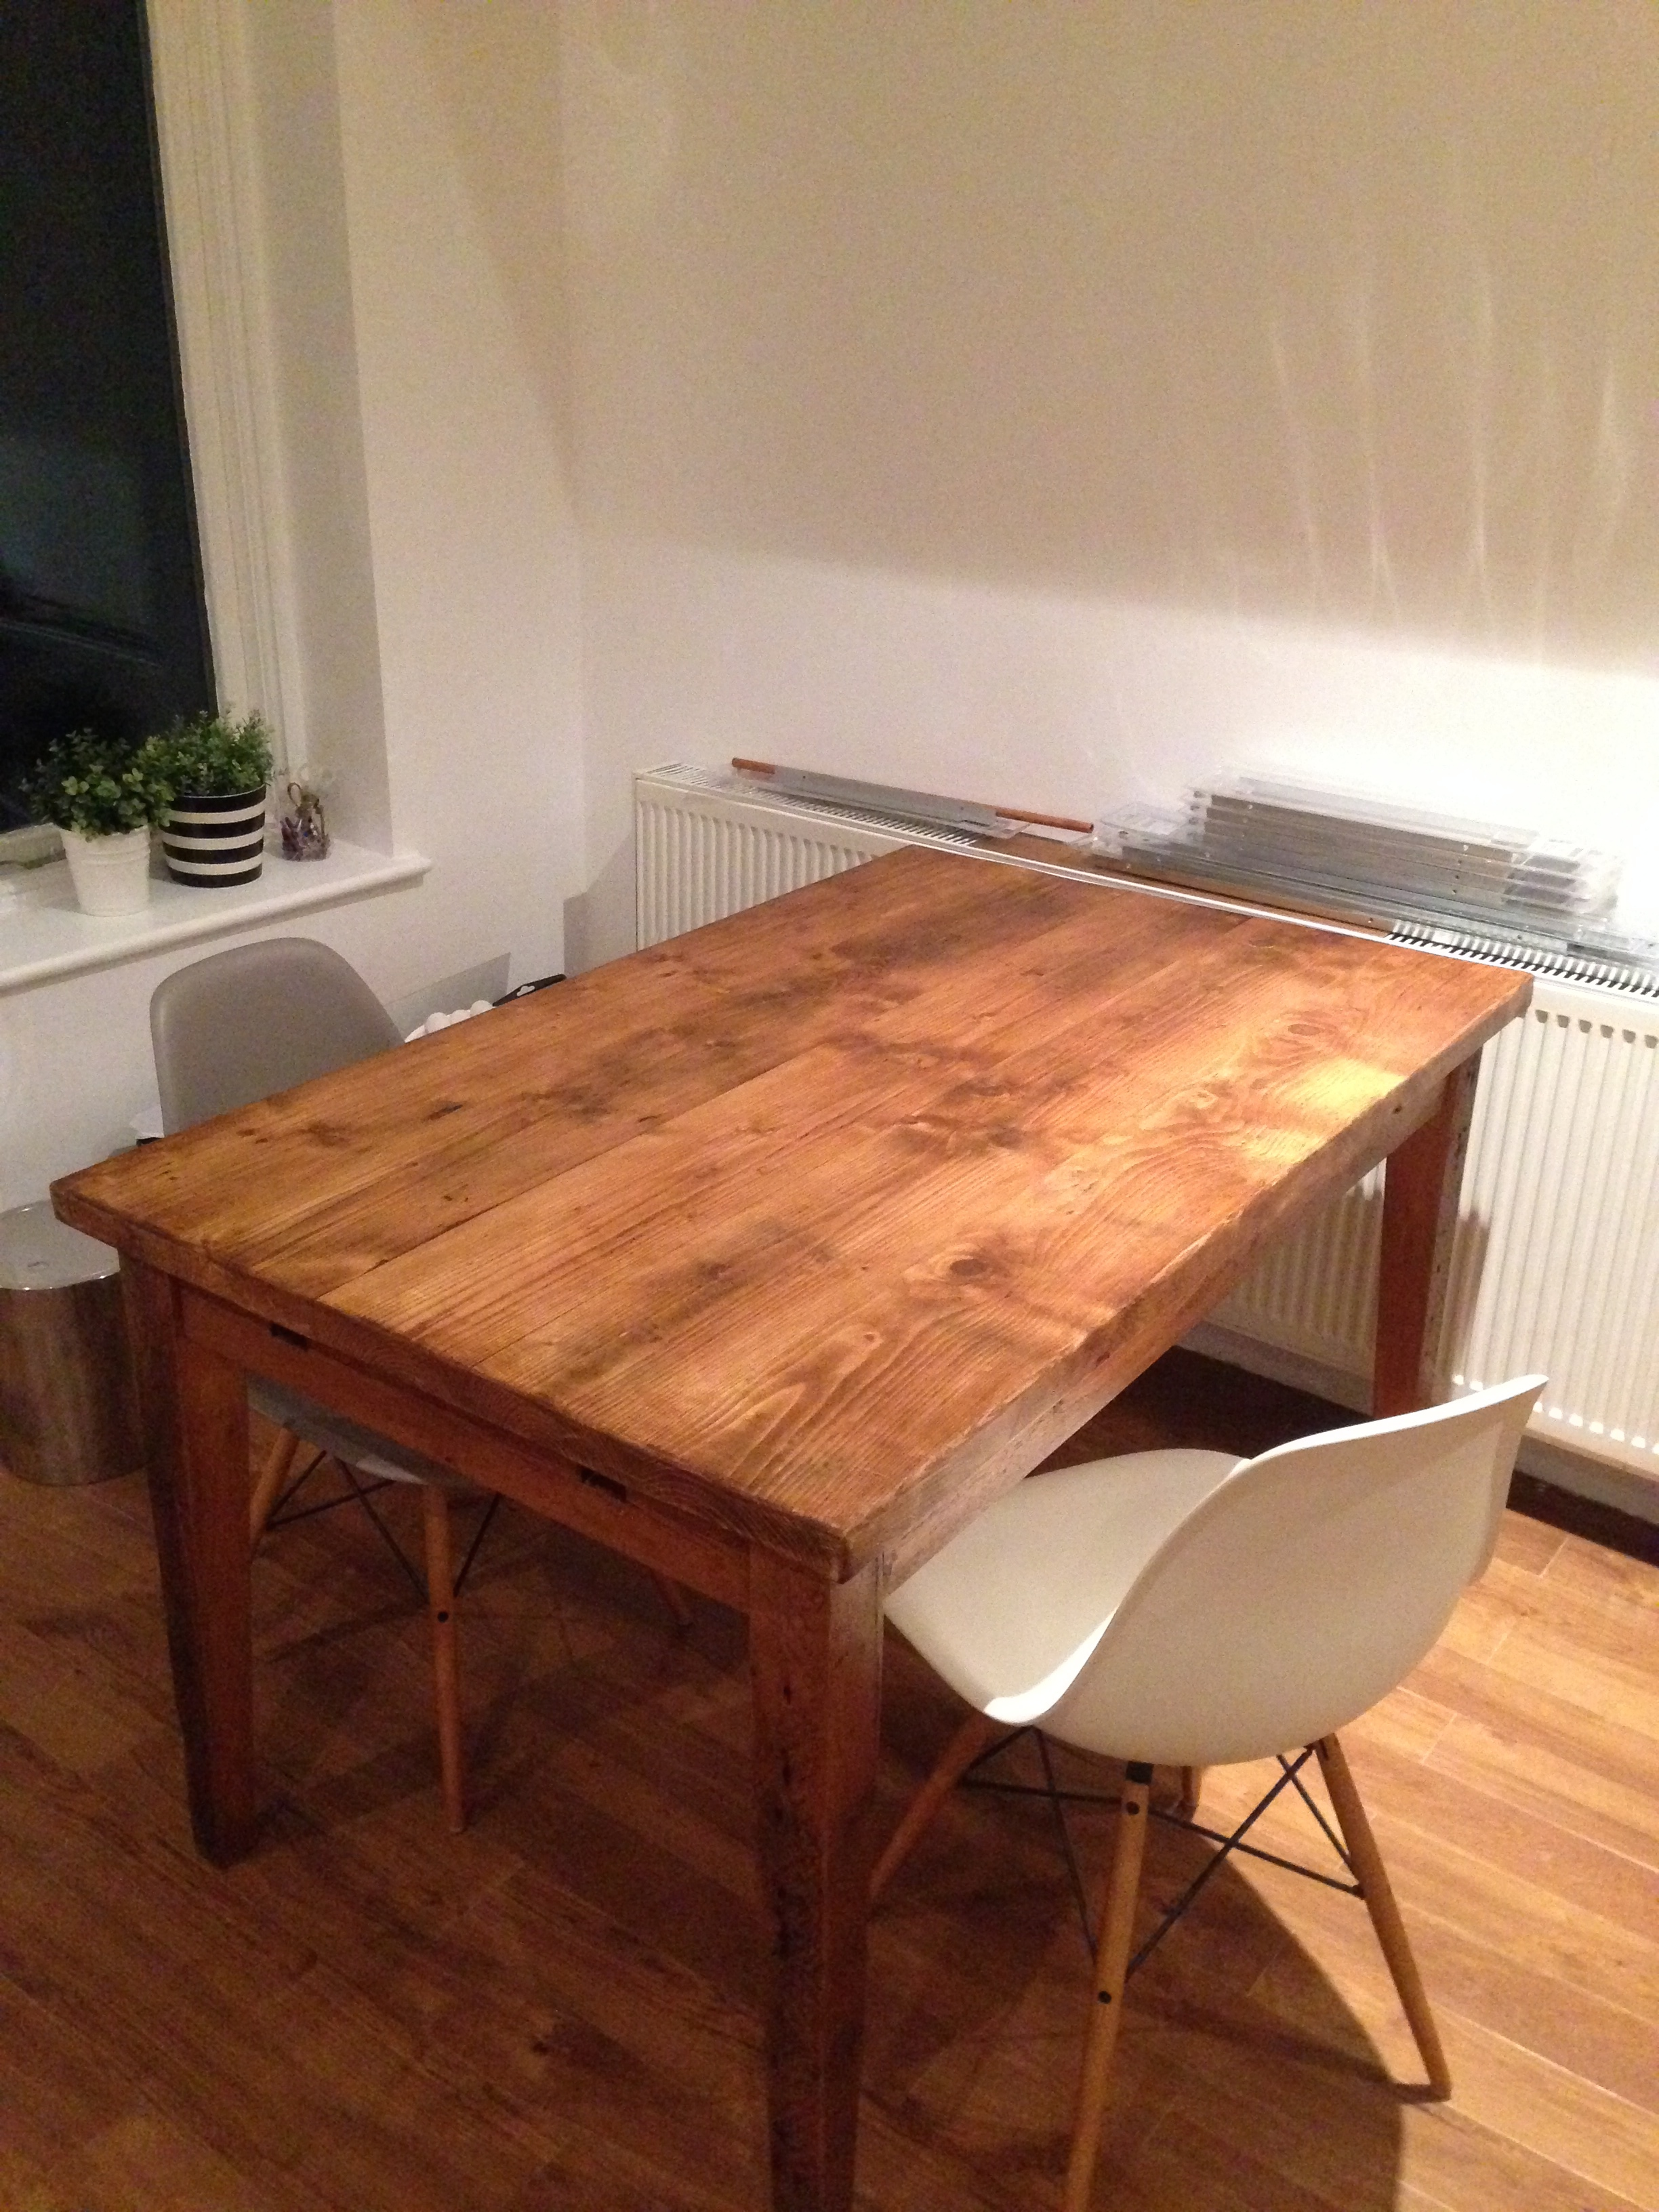 4ft table